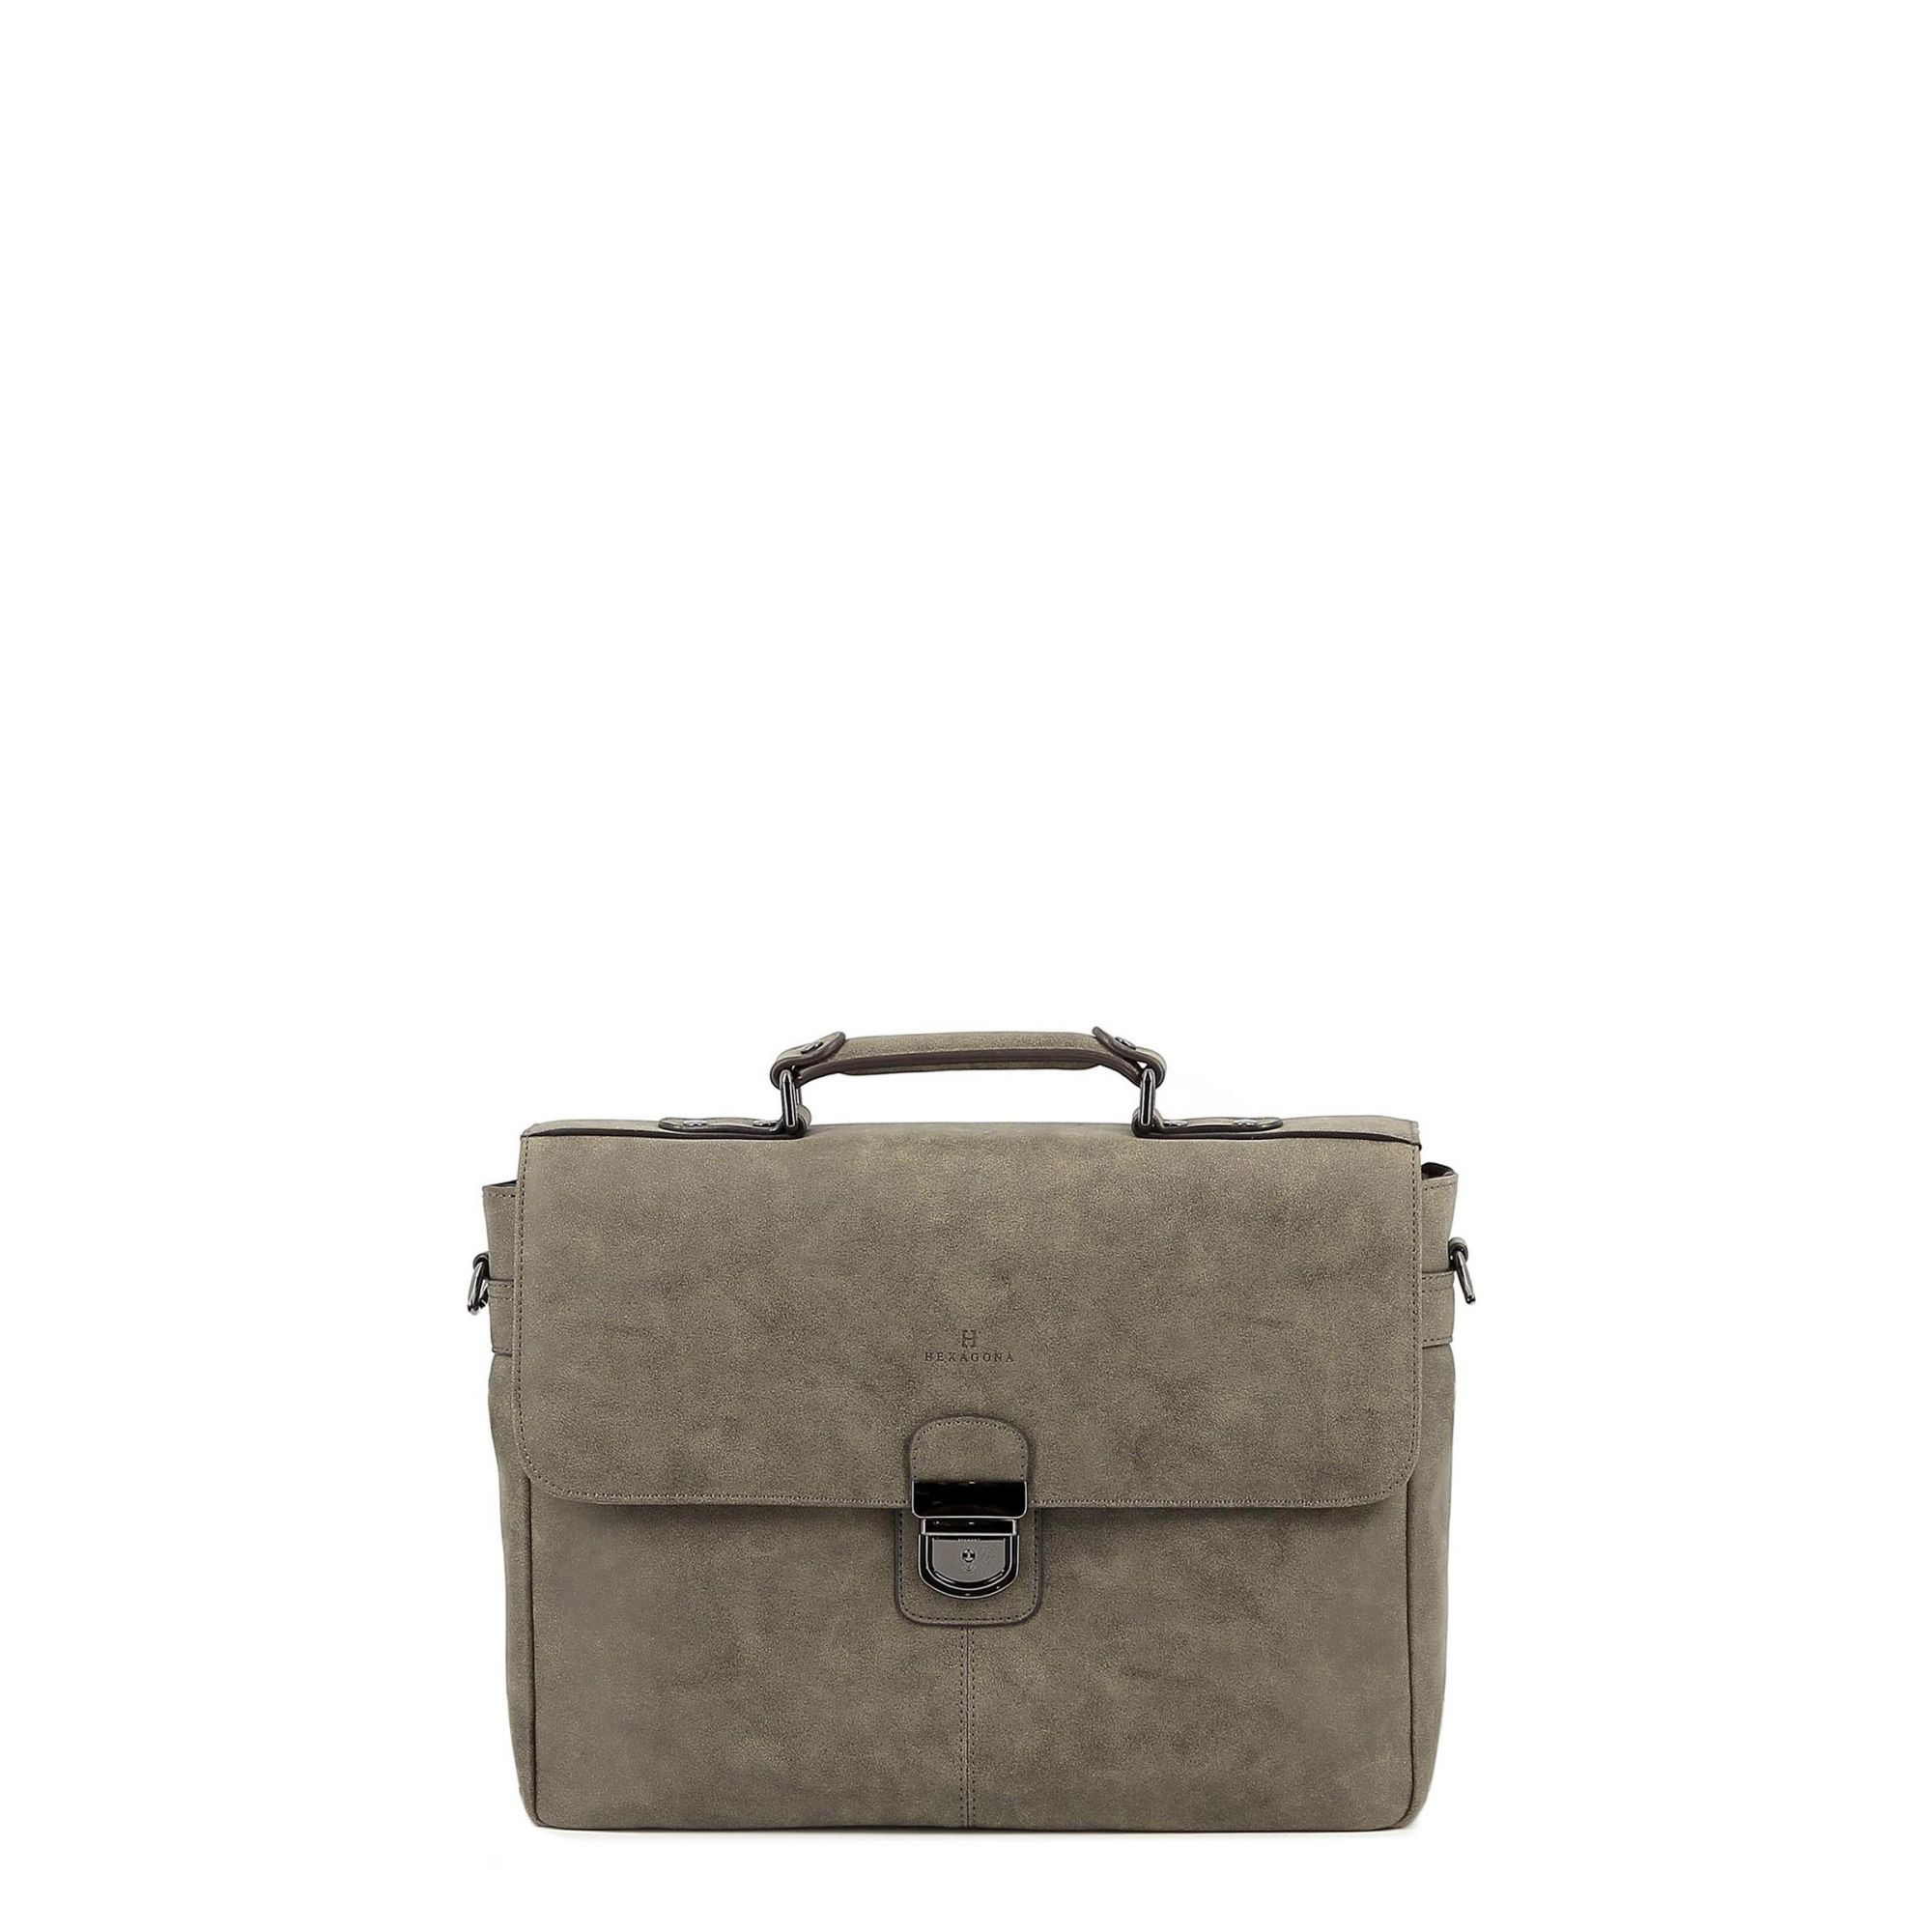 Synthetic satchel